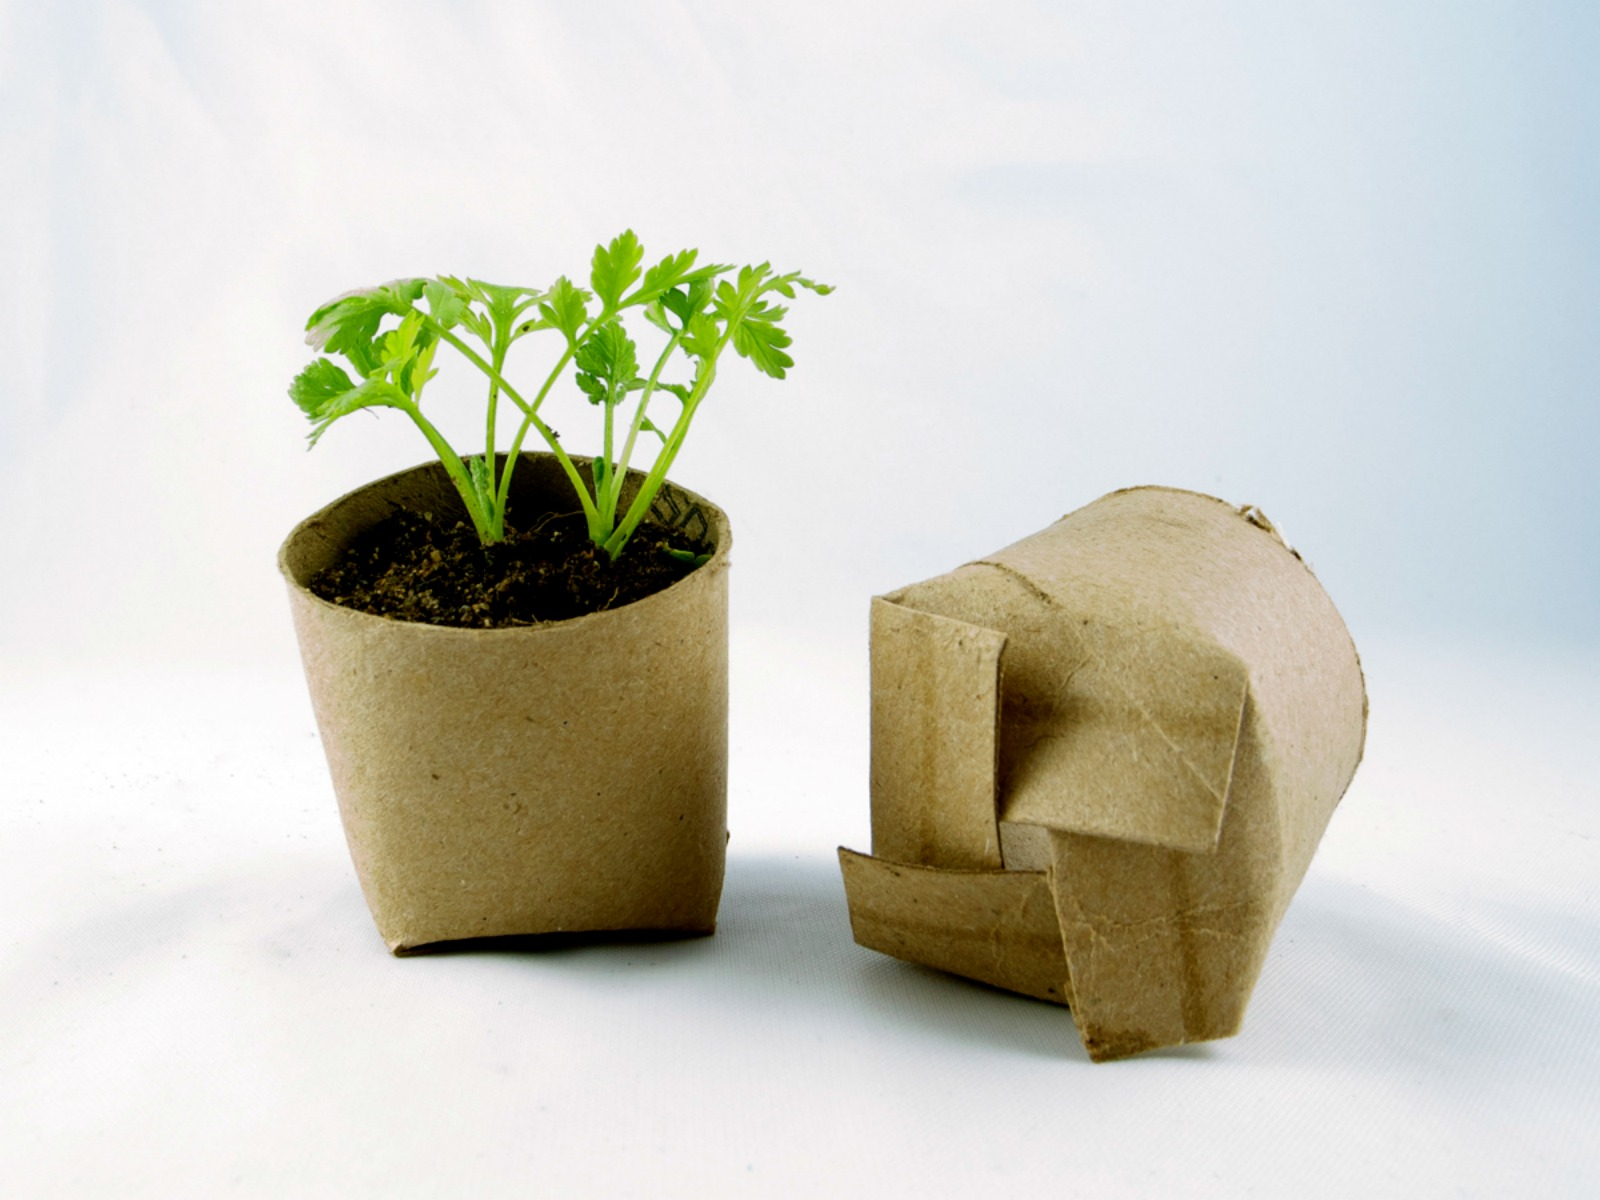 How To Make Cool Planters From Recycled Materials One Green Planet